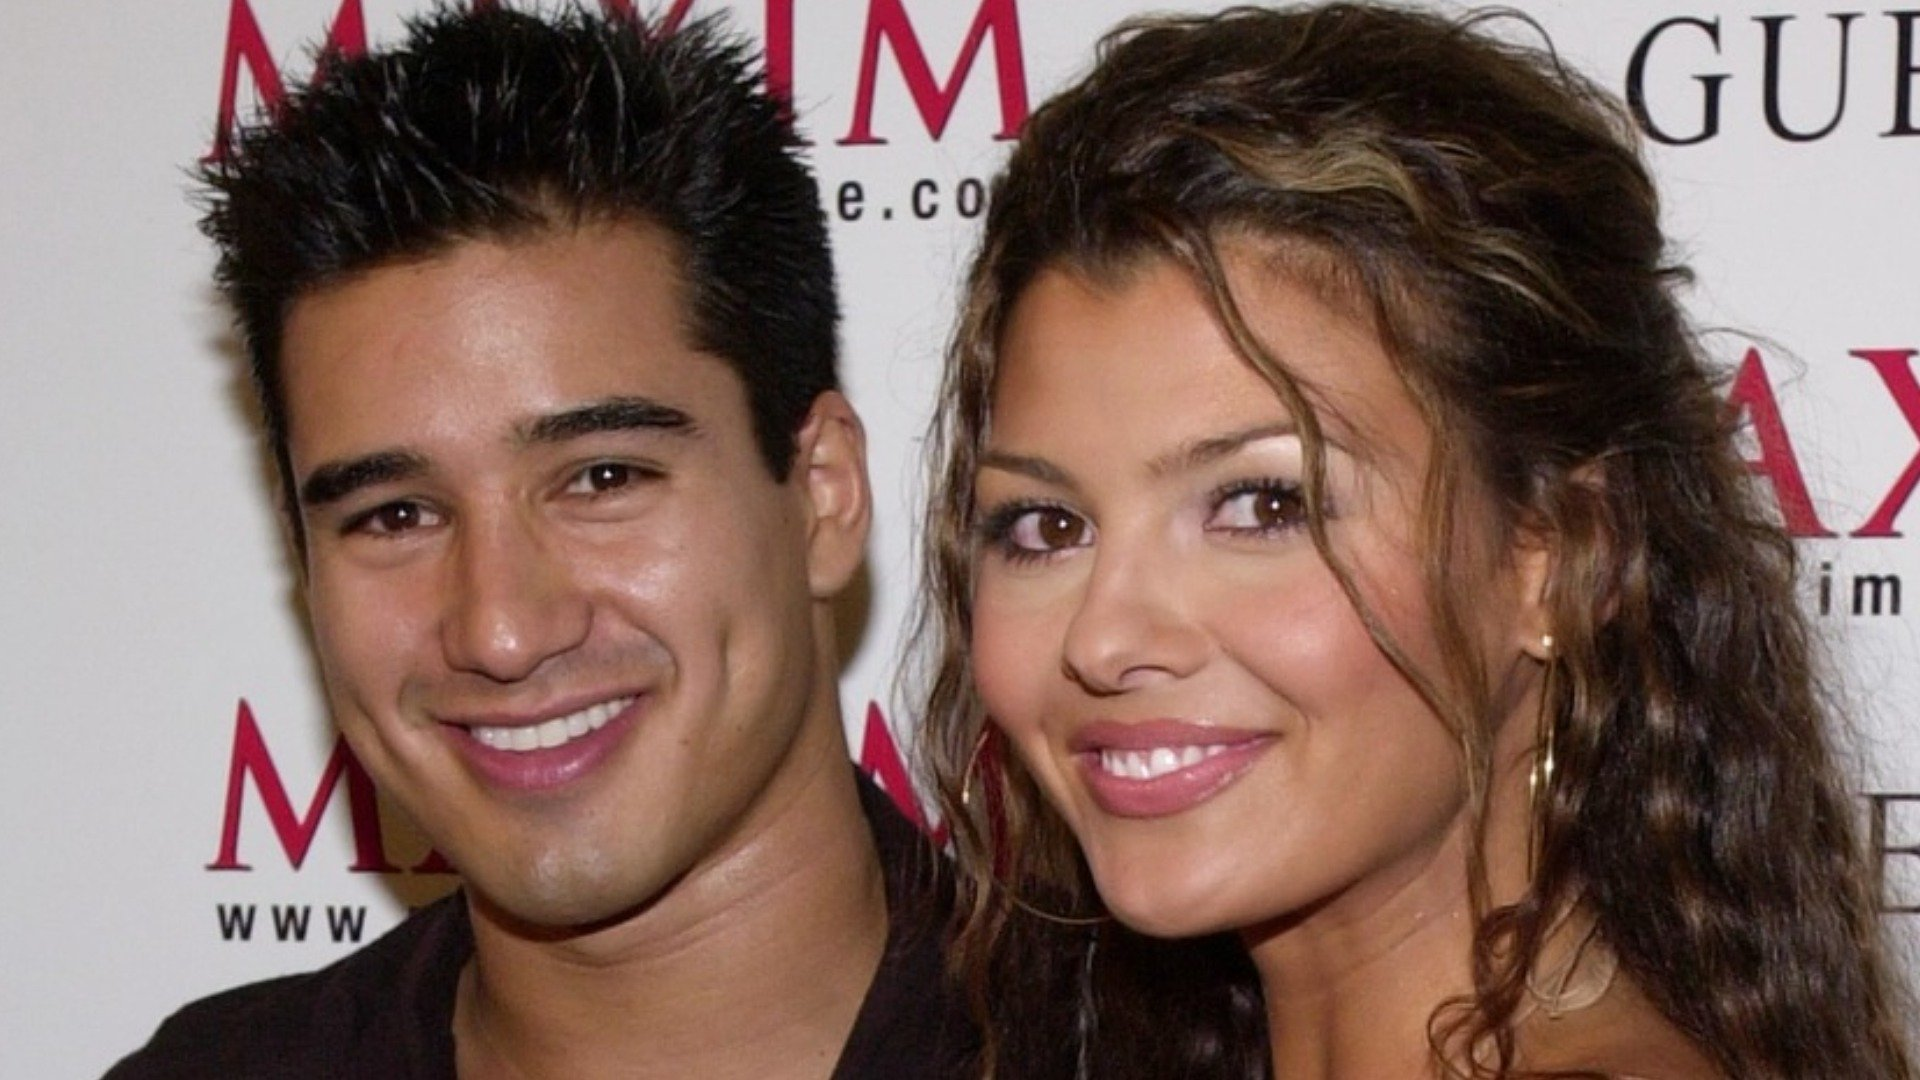 Celebrity Marriages That Failed For The Strangest Reasons